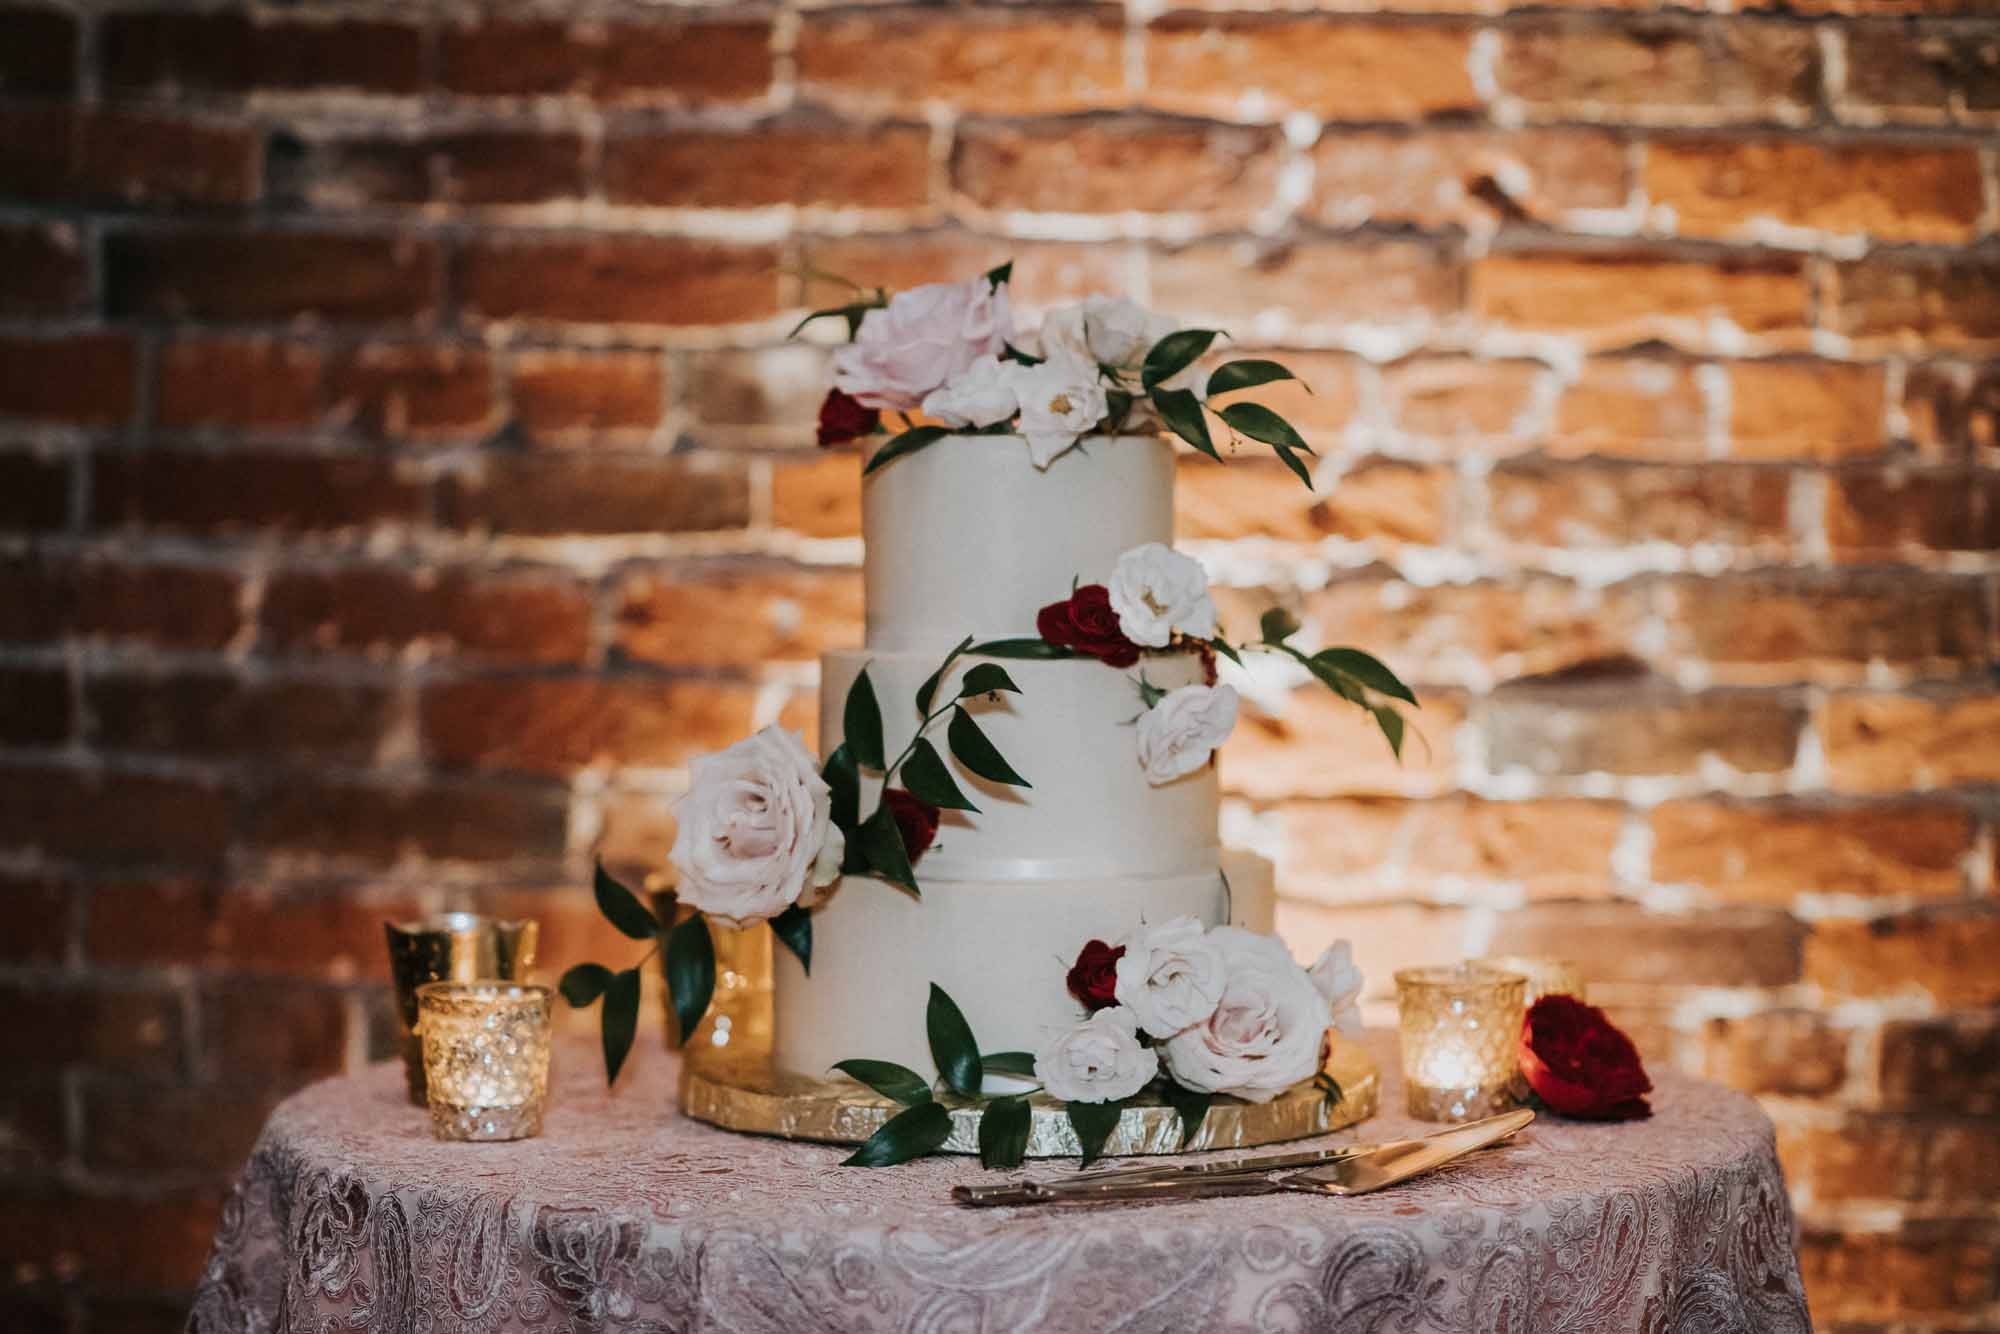 three tiered wedding cake decorated with roses